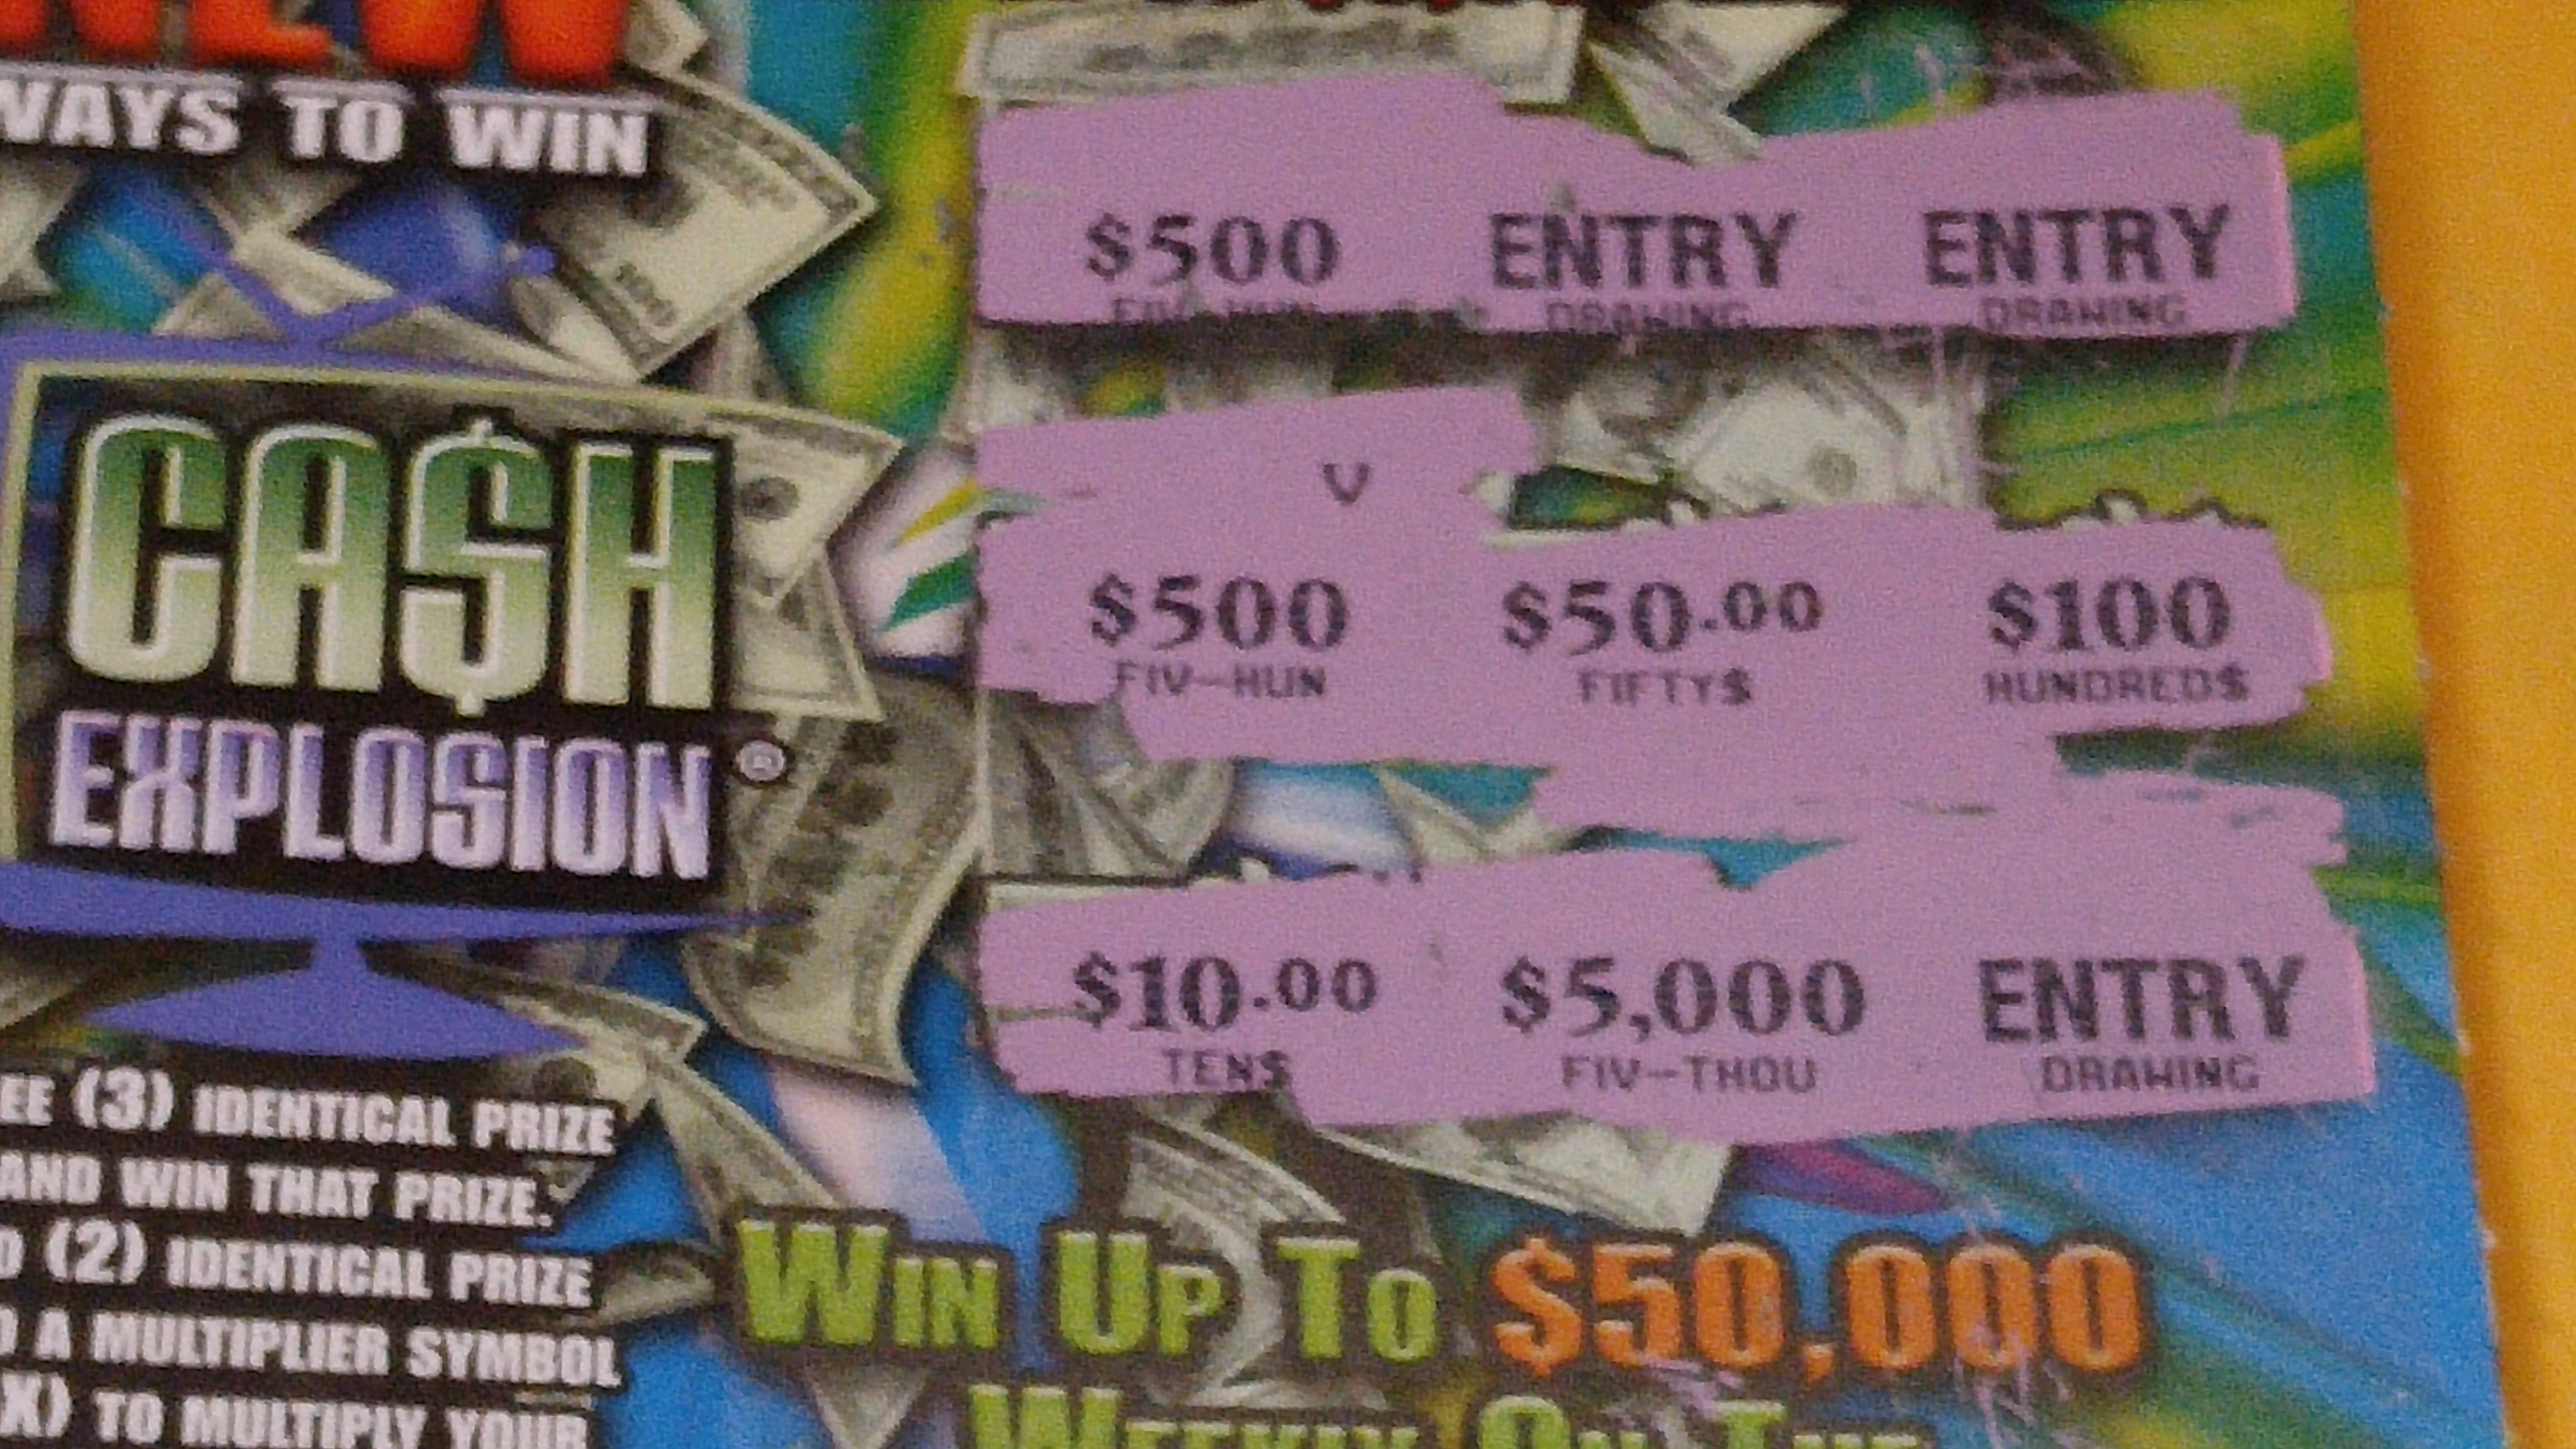 Cash explosion game show in ohio play casino free money